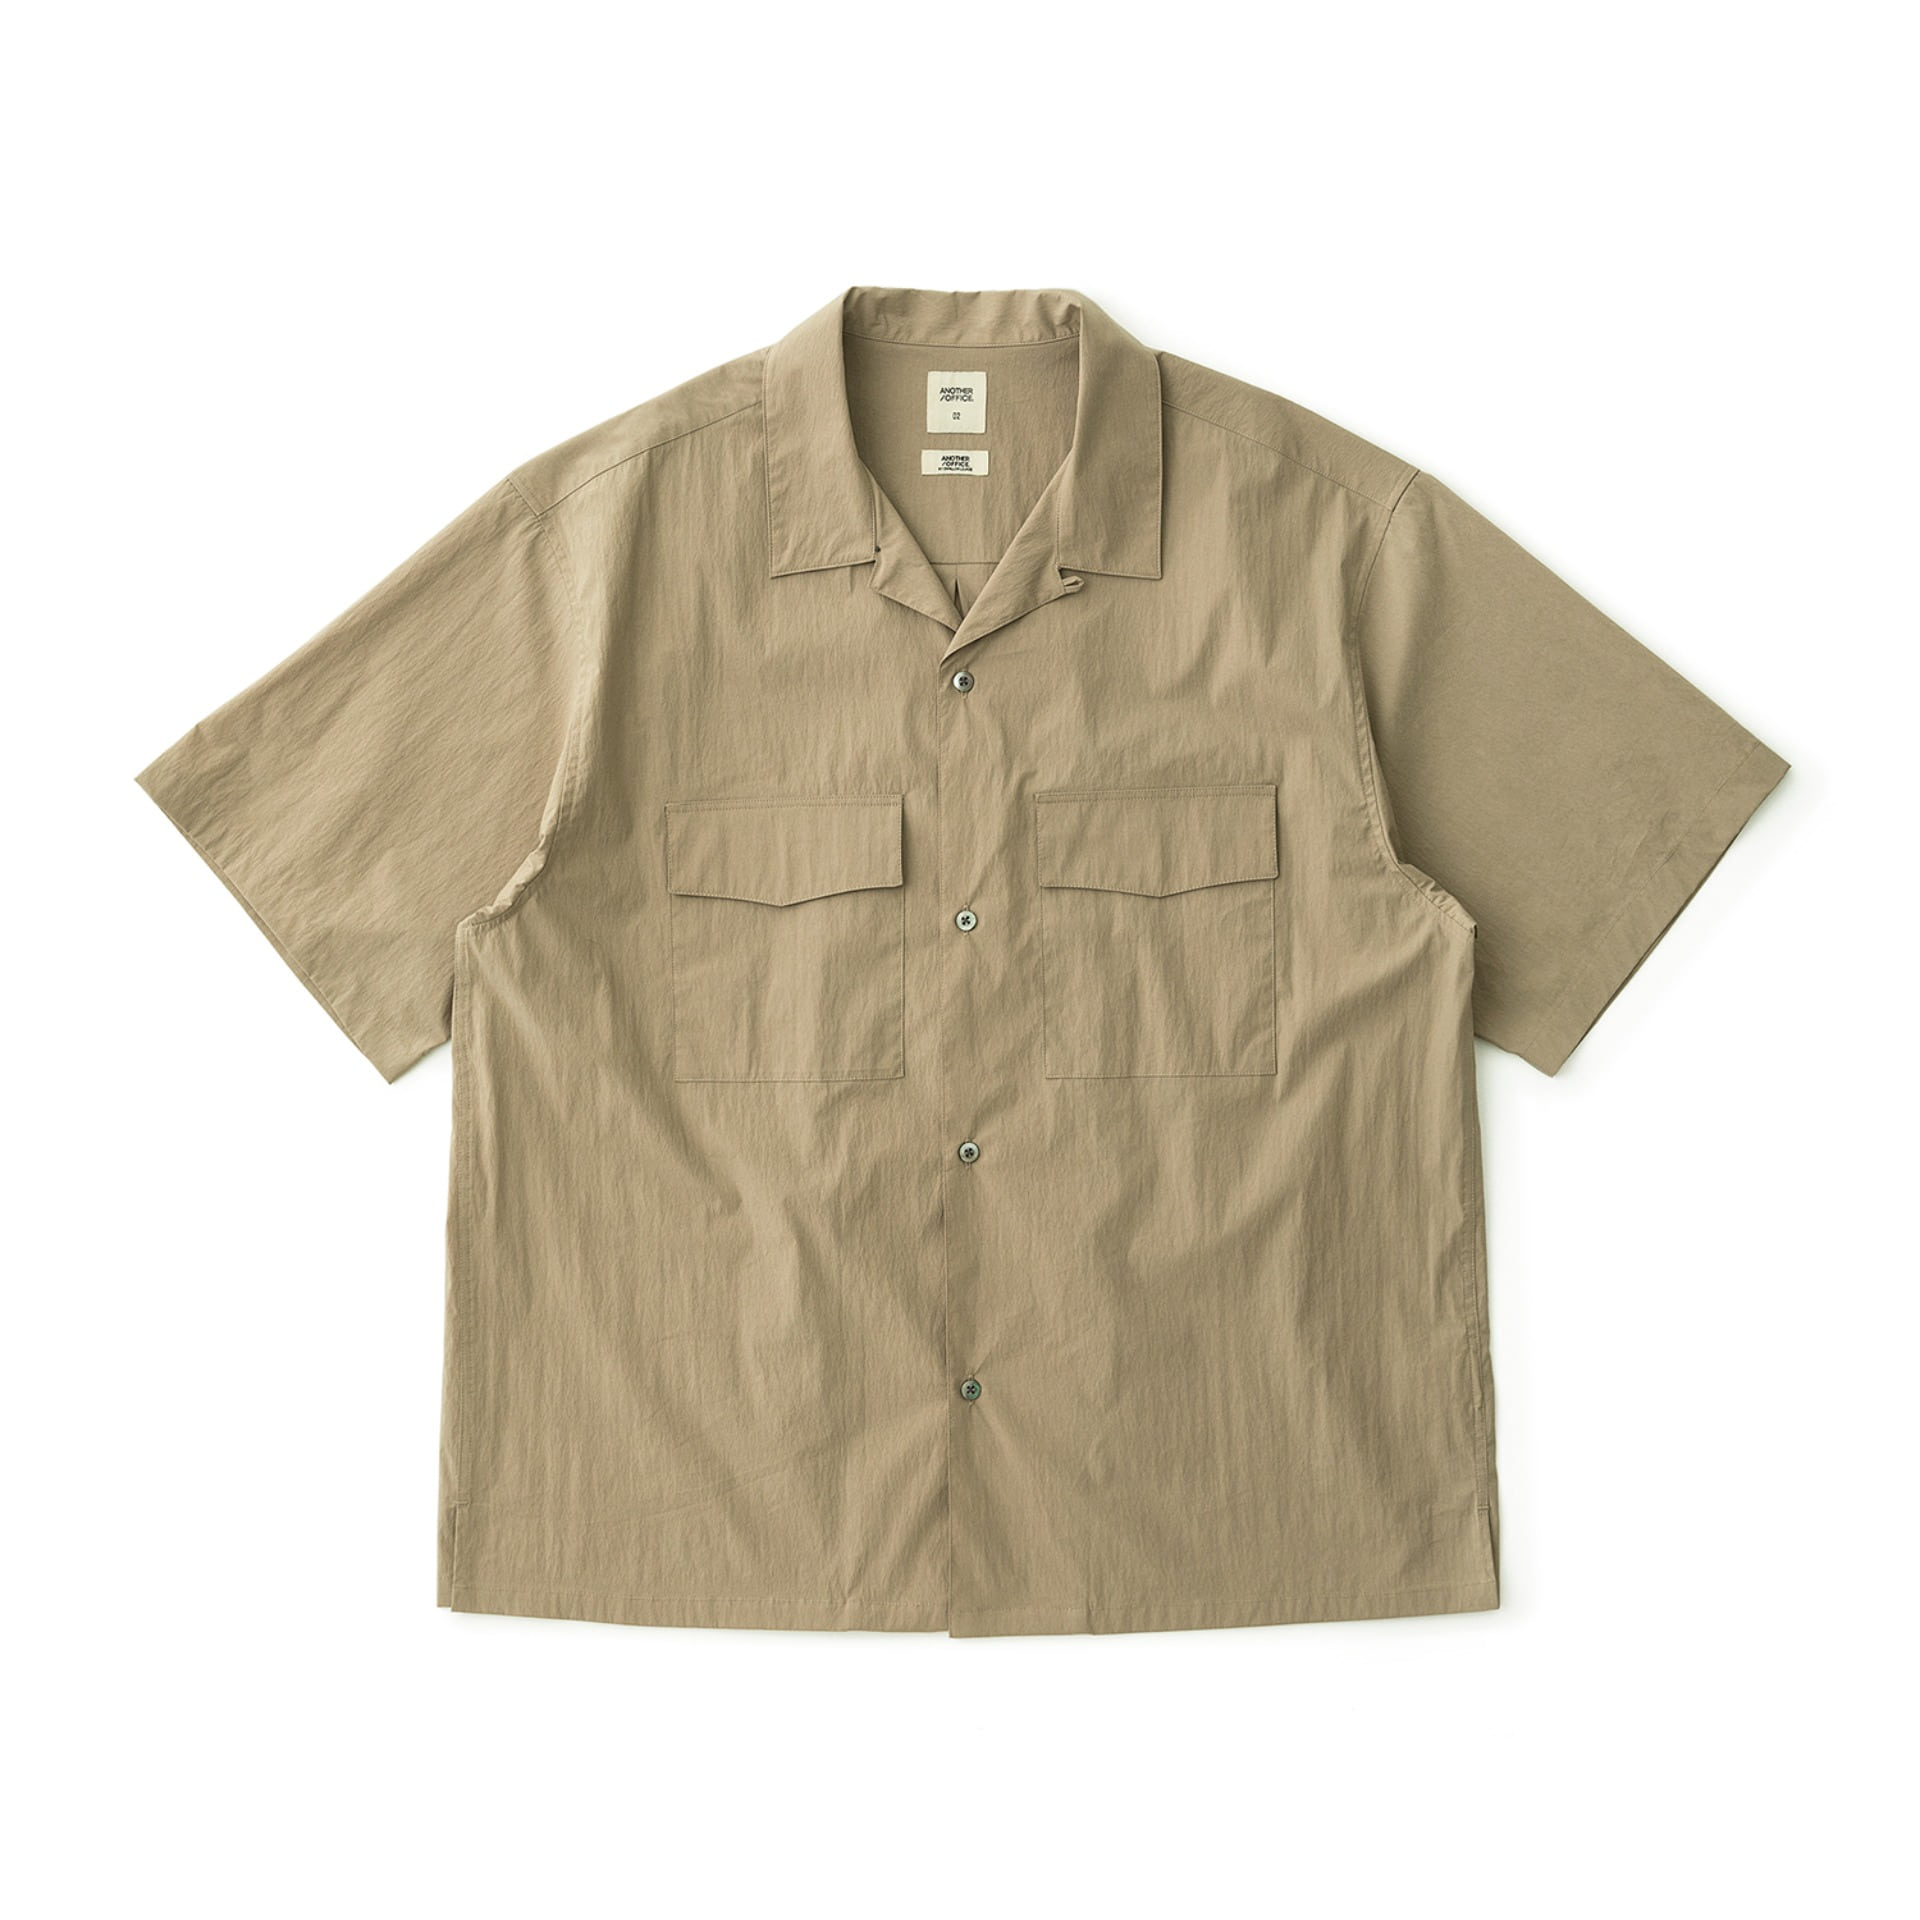 Voyager Open Collor Shirt (Desert)